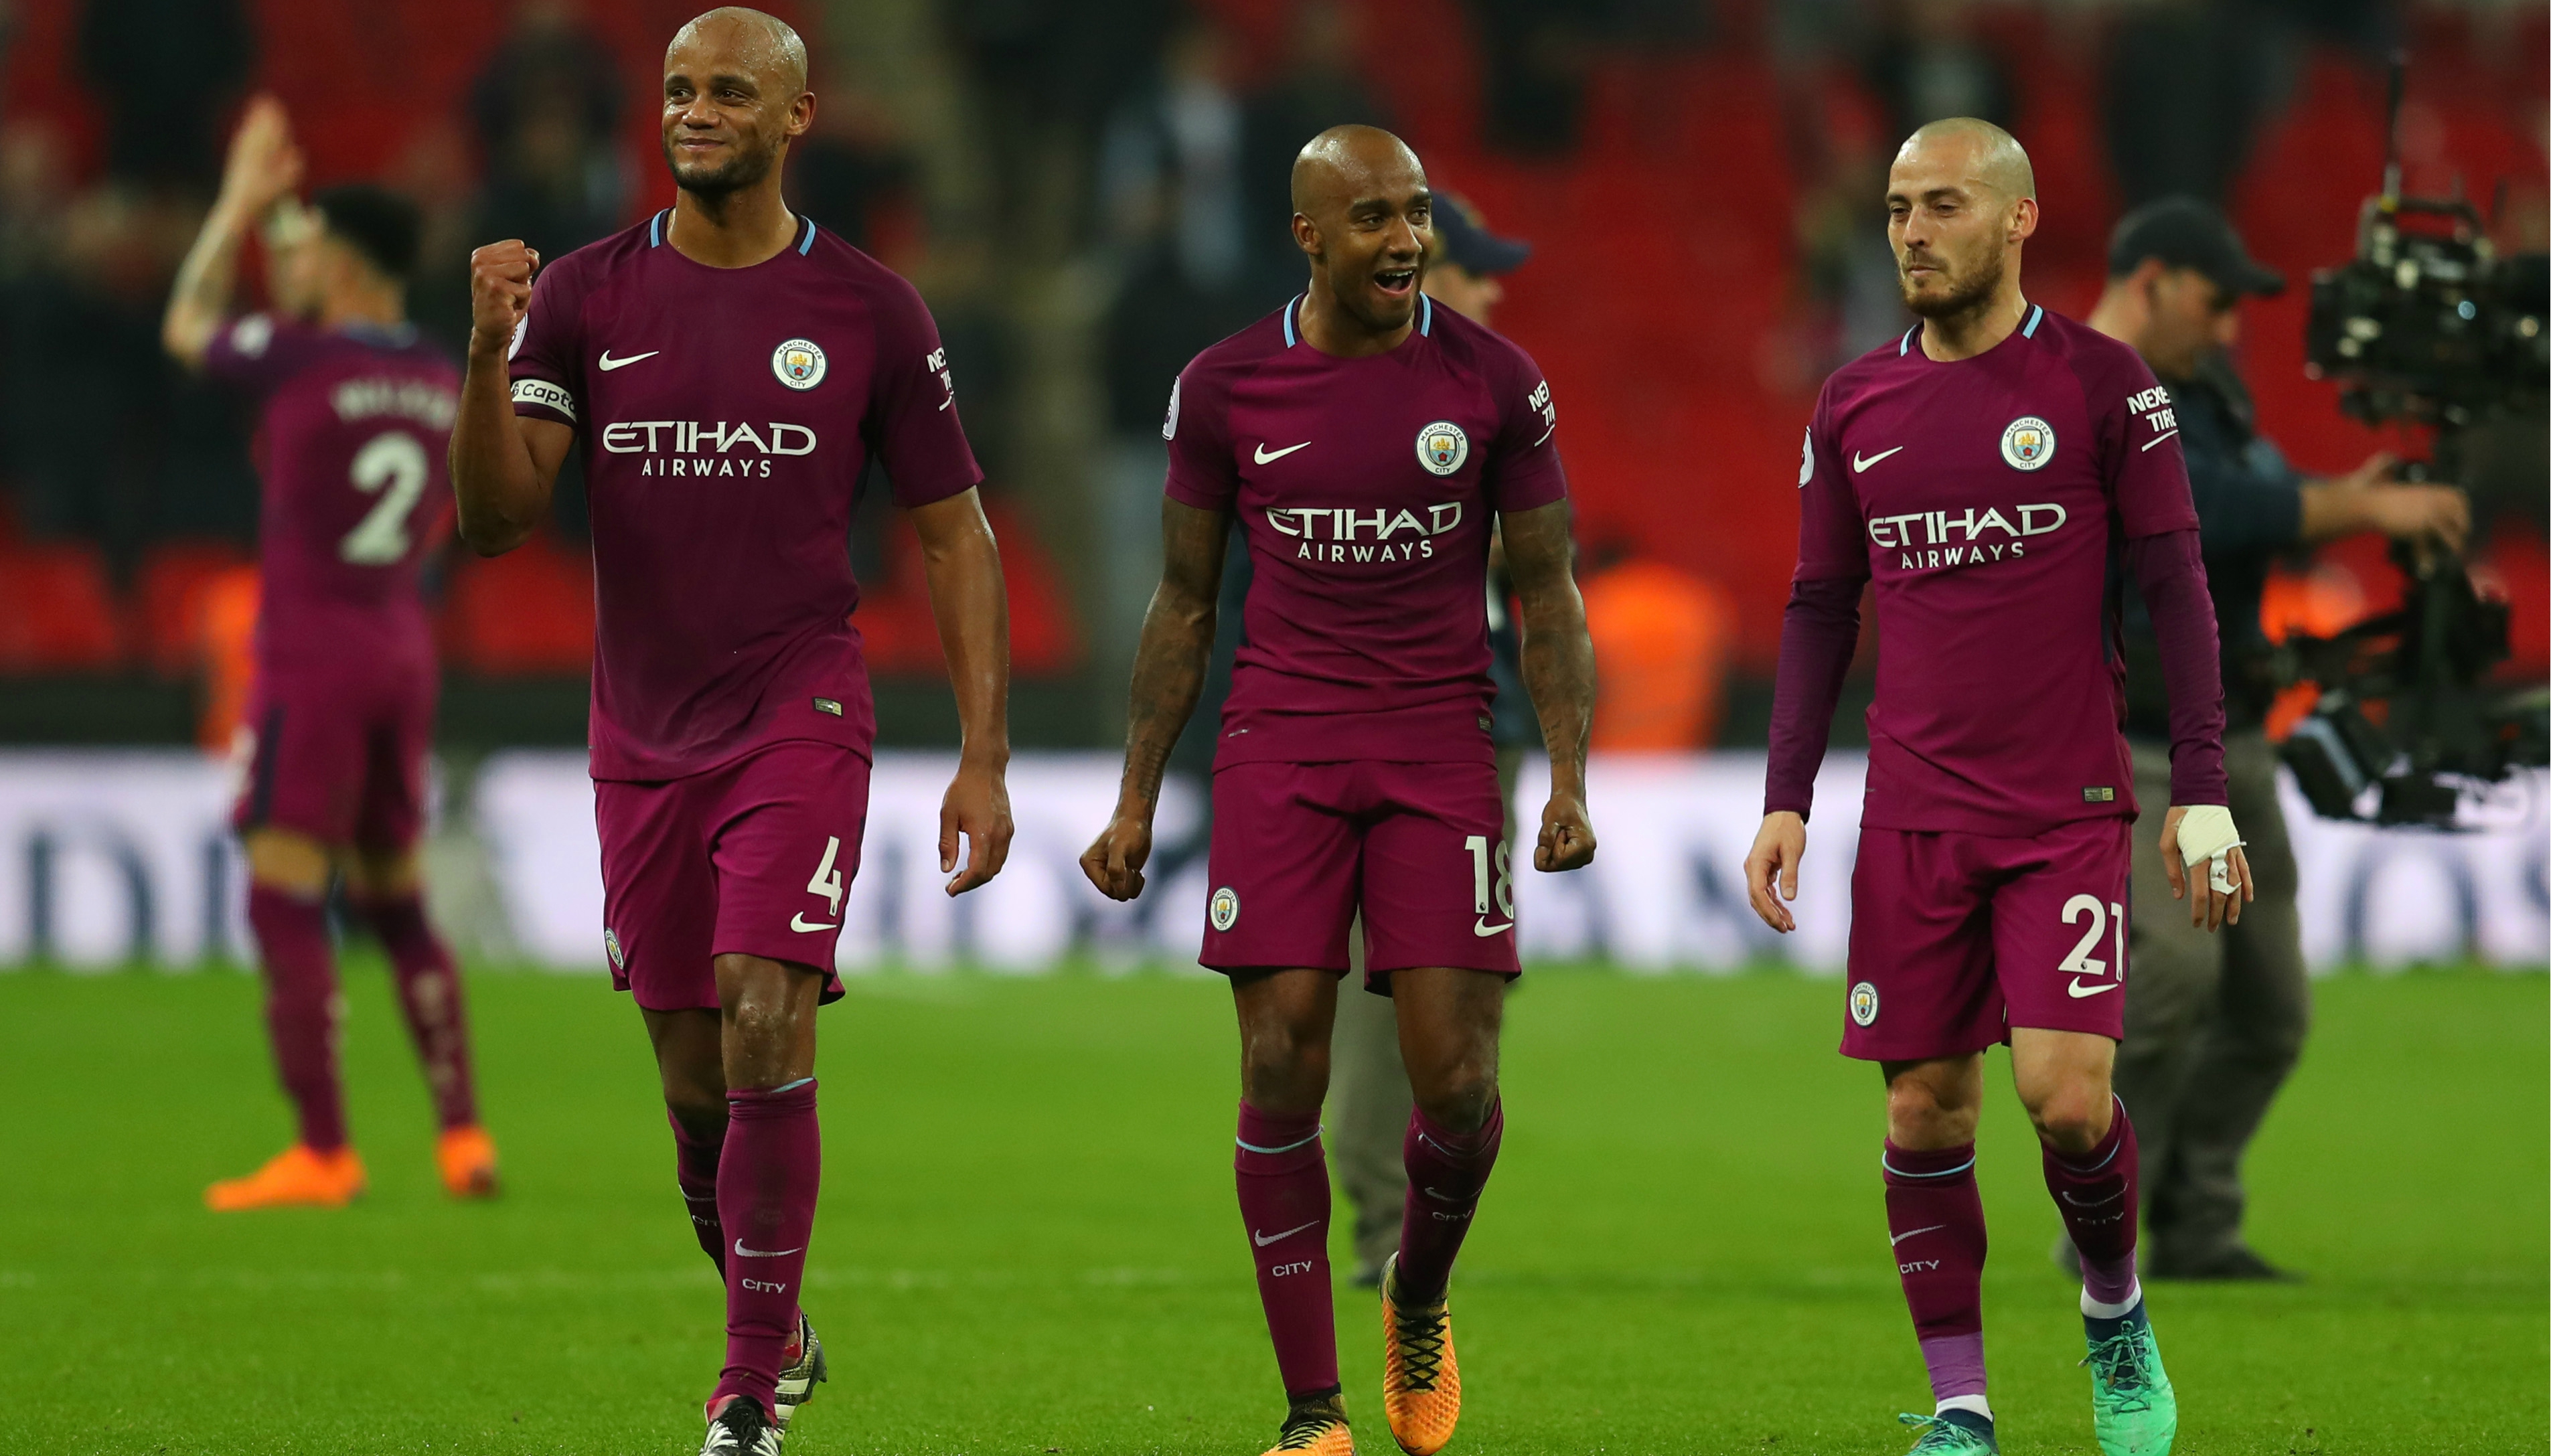 Man City crowned Premier League champions